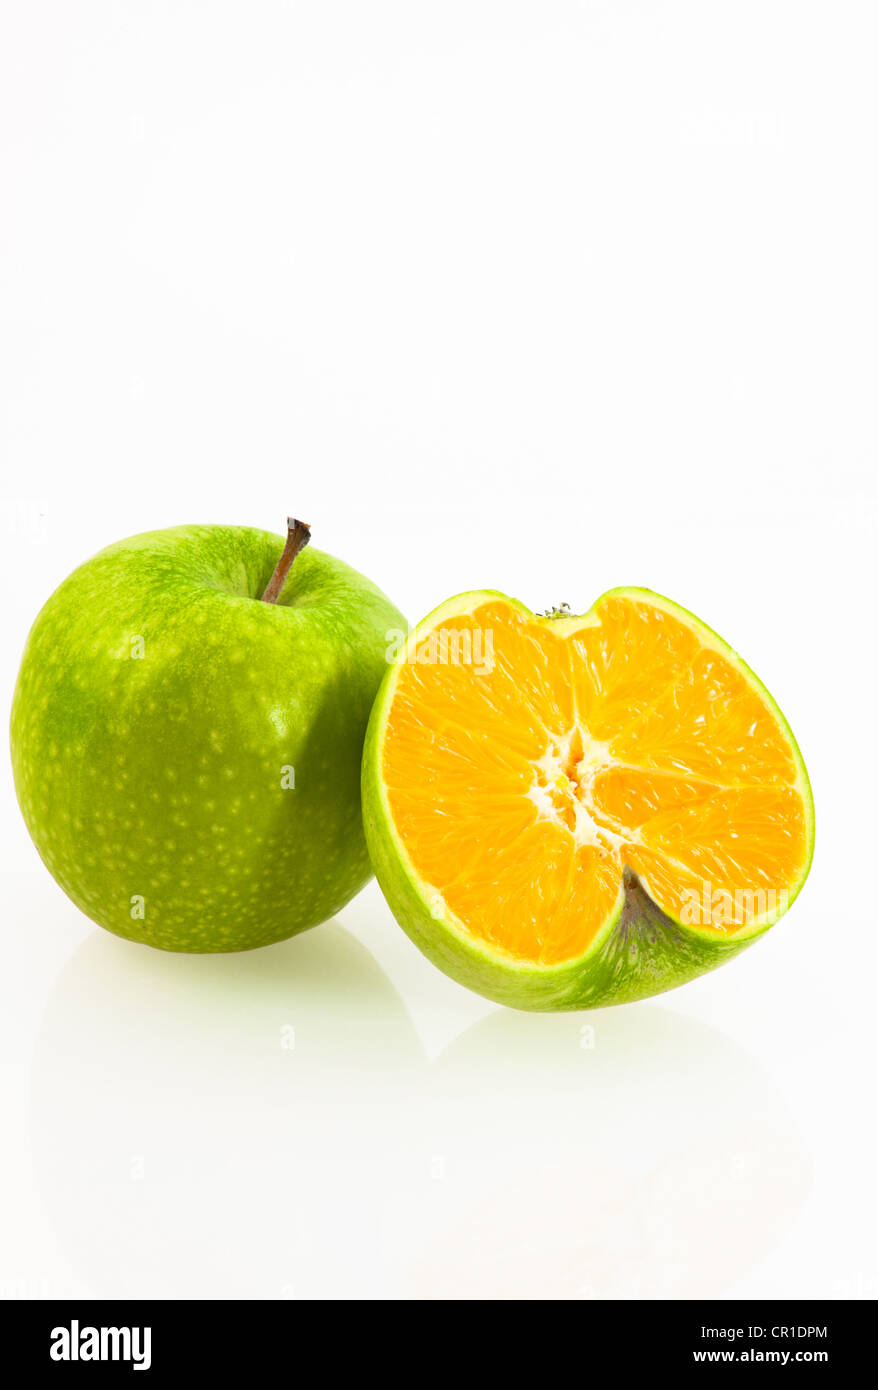 Cross between an apple and an orange, symbolic image for genetically modified fruit - Stock Image